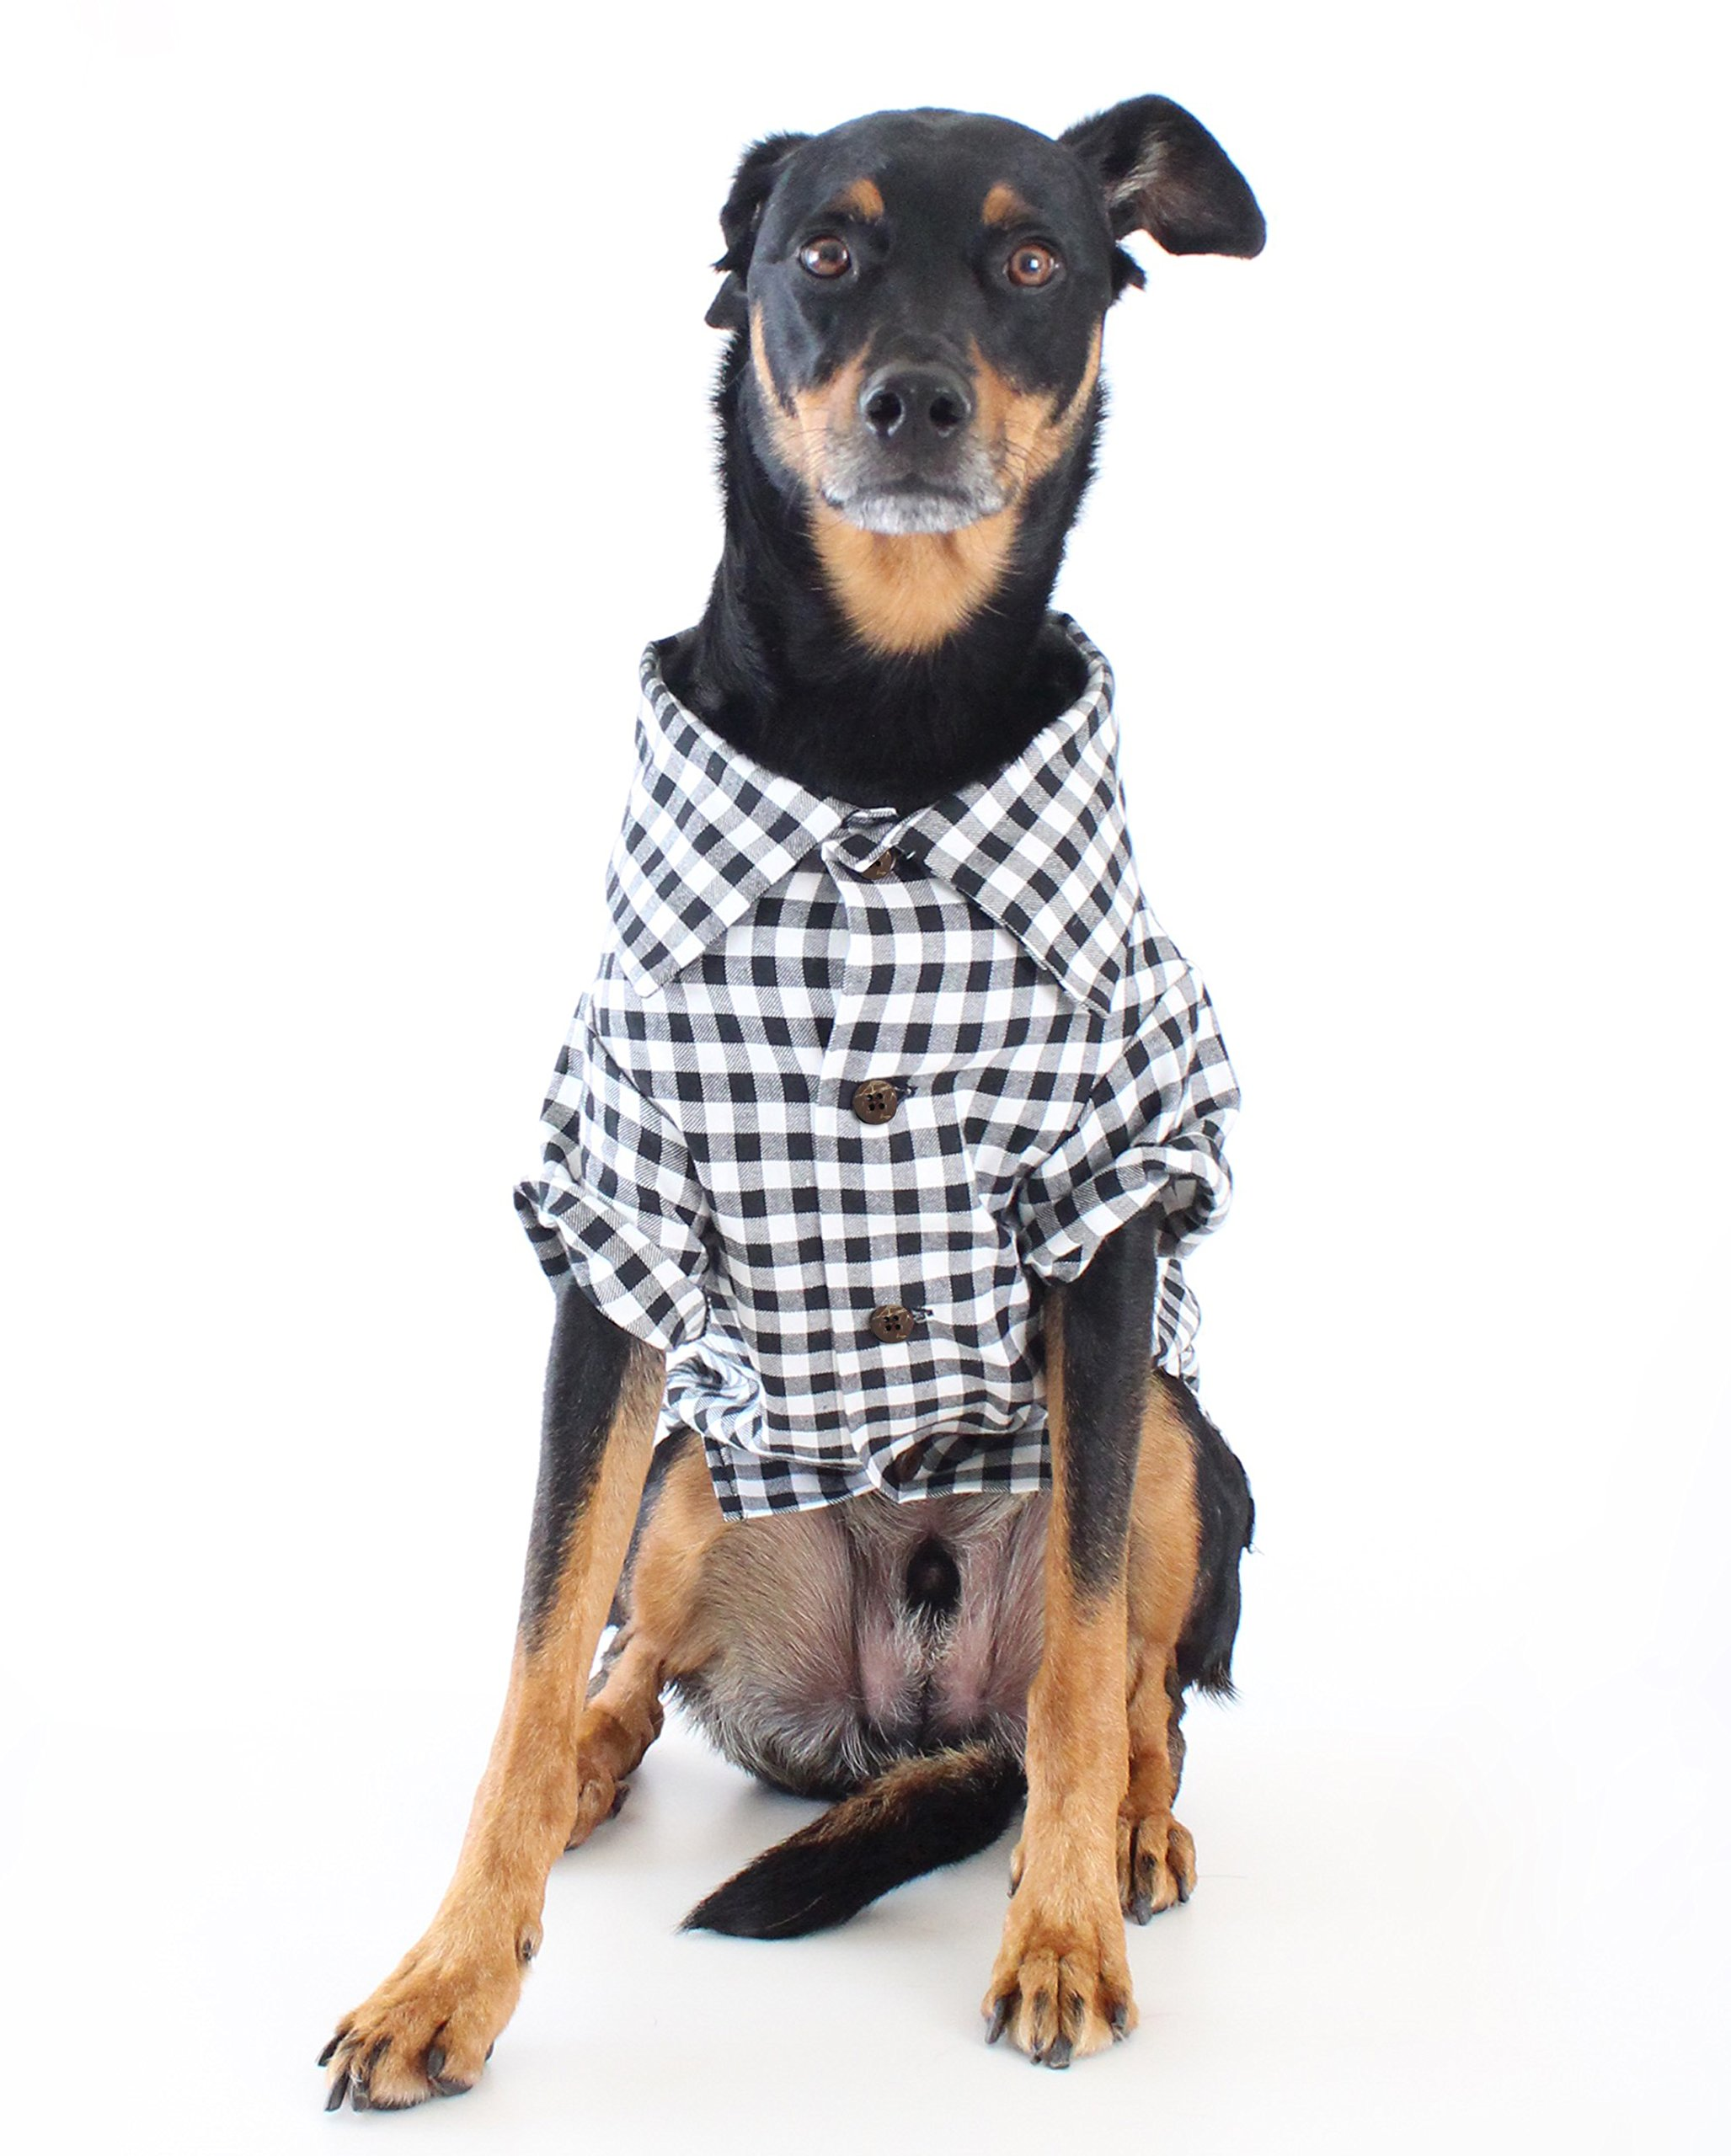 Dog Threads™ Plaid Dog Shirt by Classic Button Down Shirt (M (20-28lbs)) Preppy Gingham Plaid Dog Dress Shirt Black and White